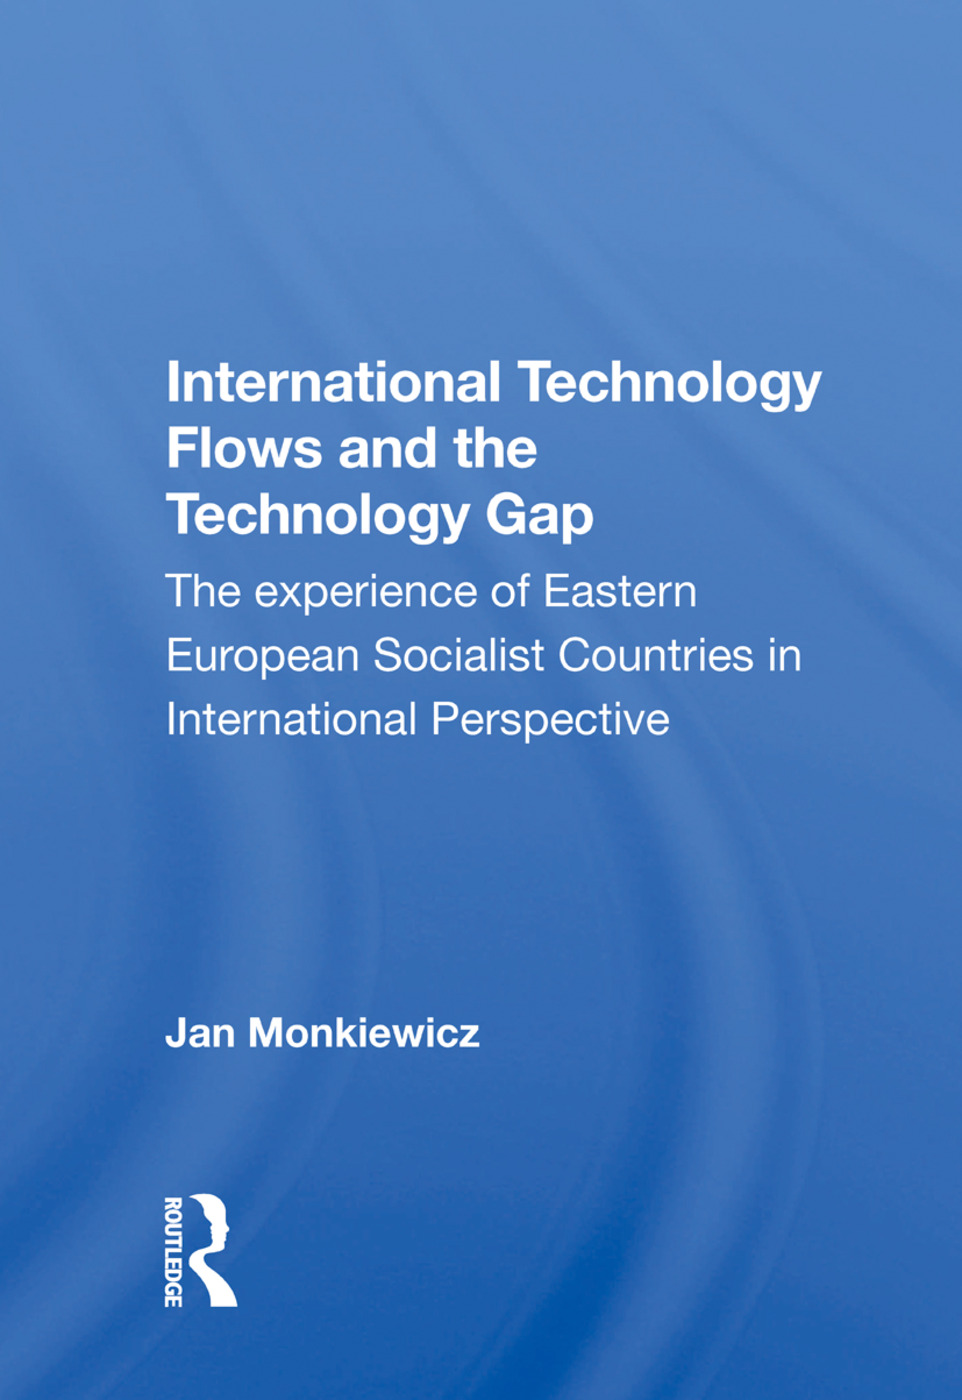 The Theory of the Dominant Economy and International Technology Transfer